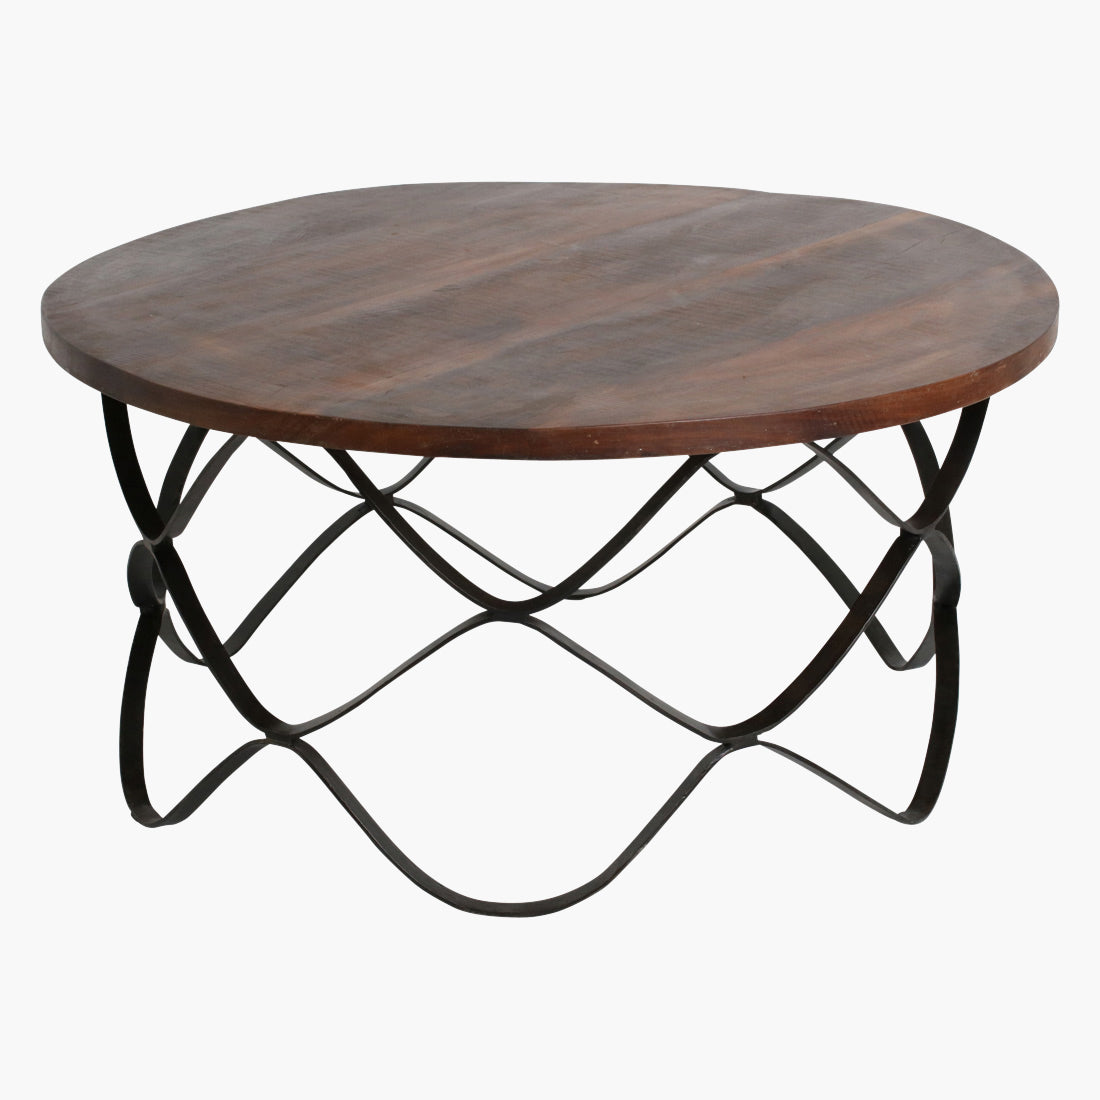 Factory wave coffeetable round large